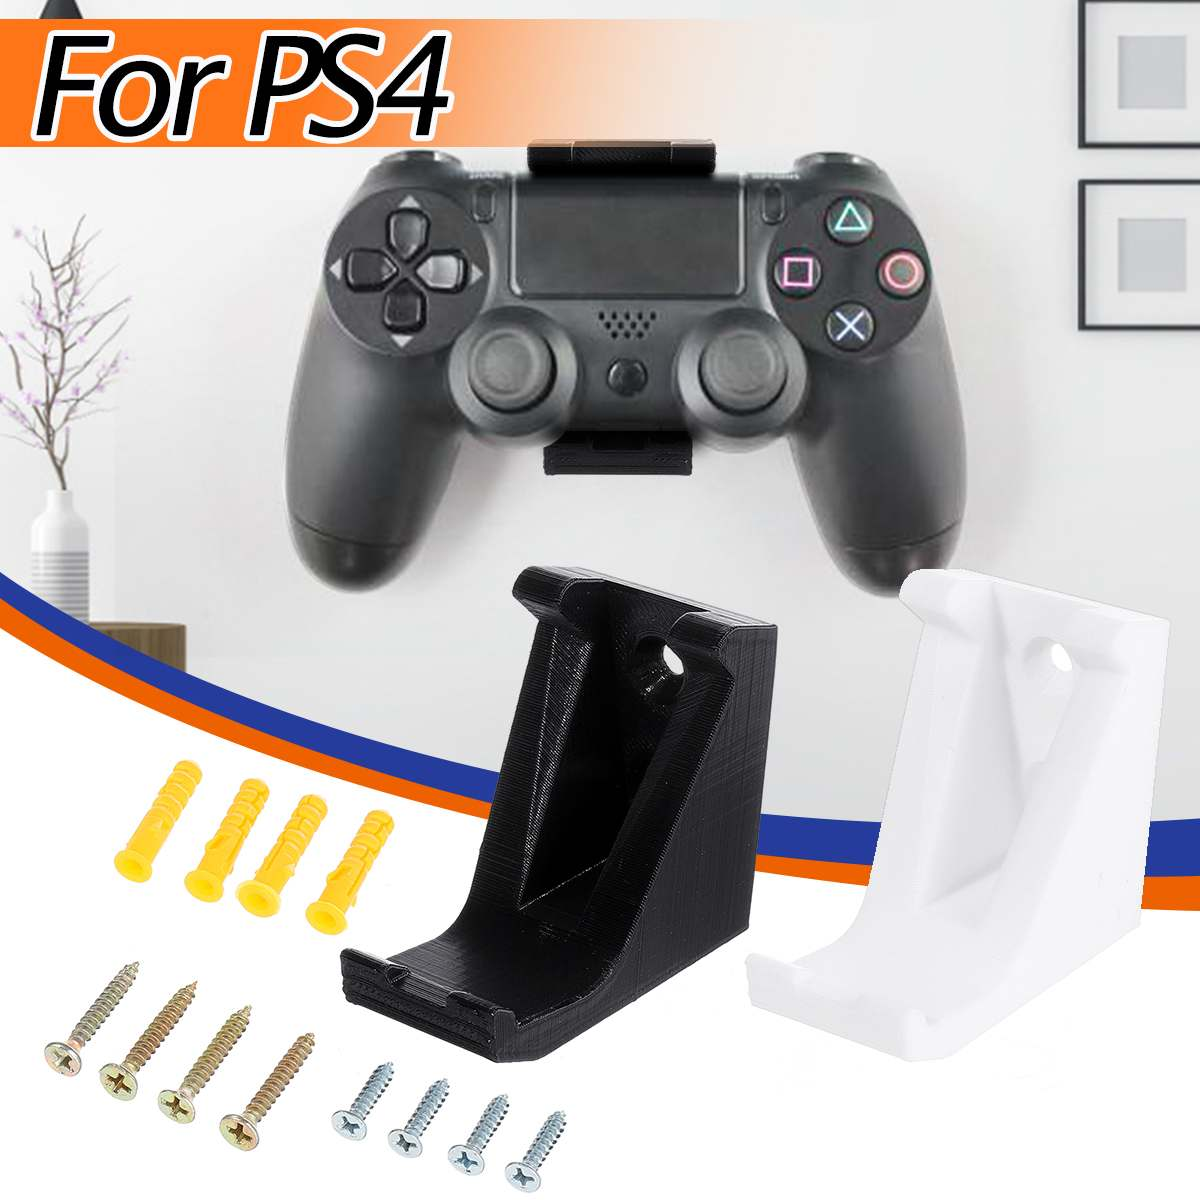 white-black-wall-holder-for-ps4-for-font-b-playstation-b-font-4-controller-game-pad-dock-gamepad-stand-holder-3d-printed-with-screws